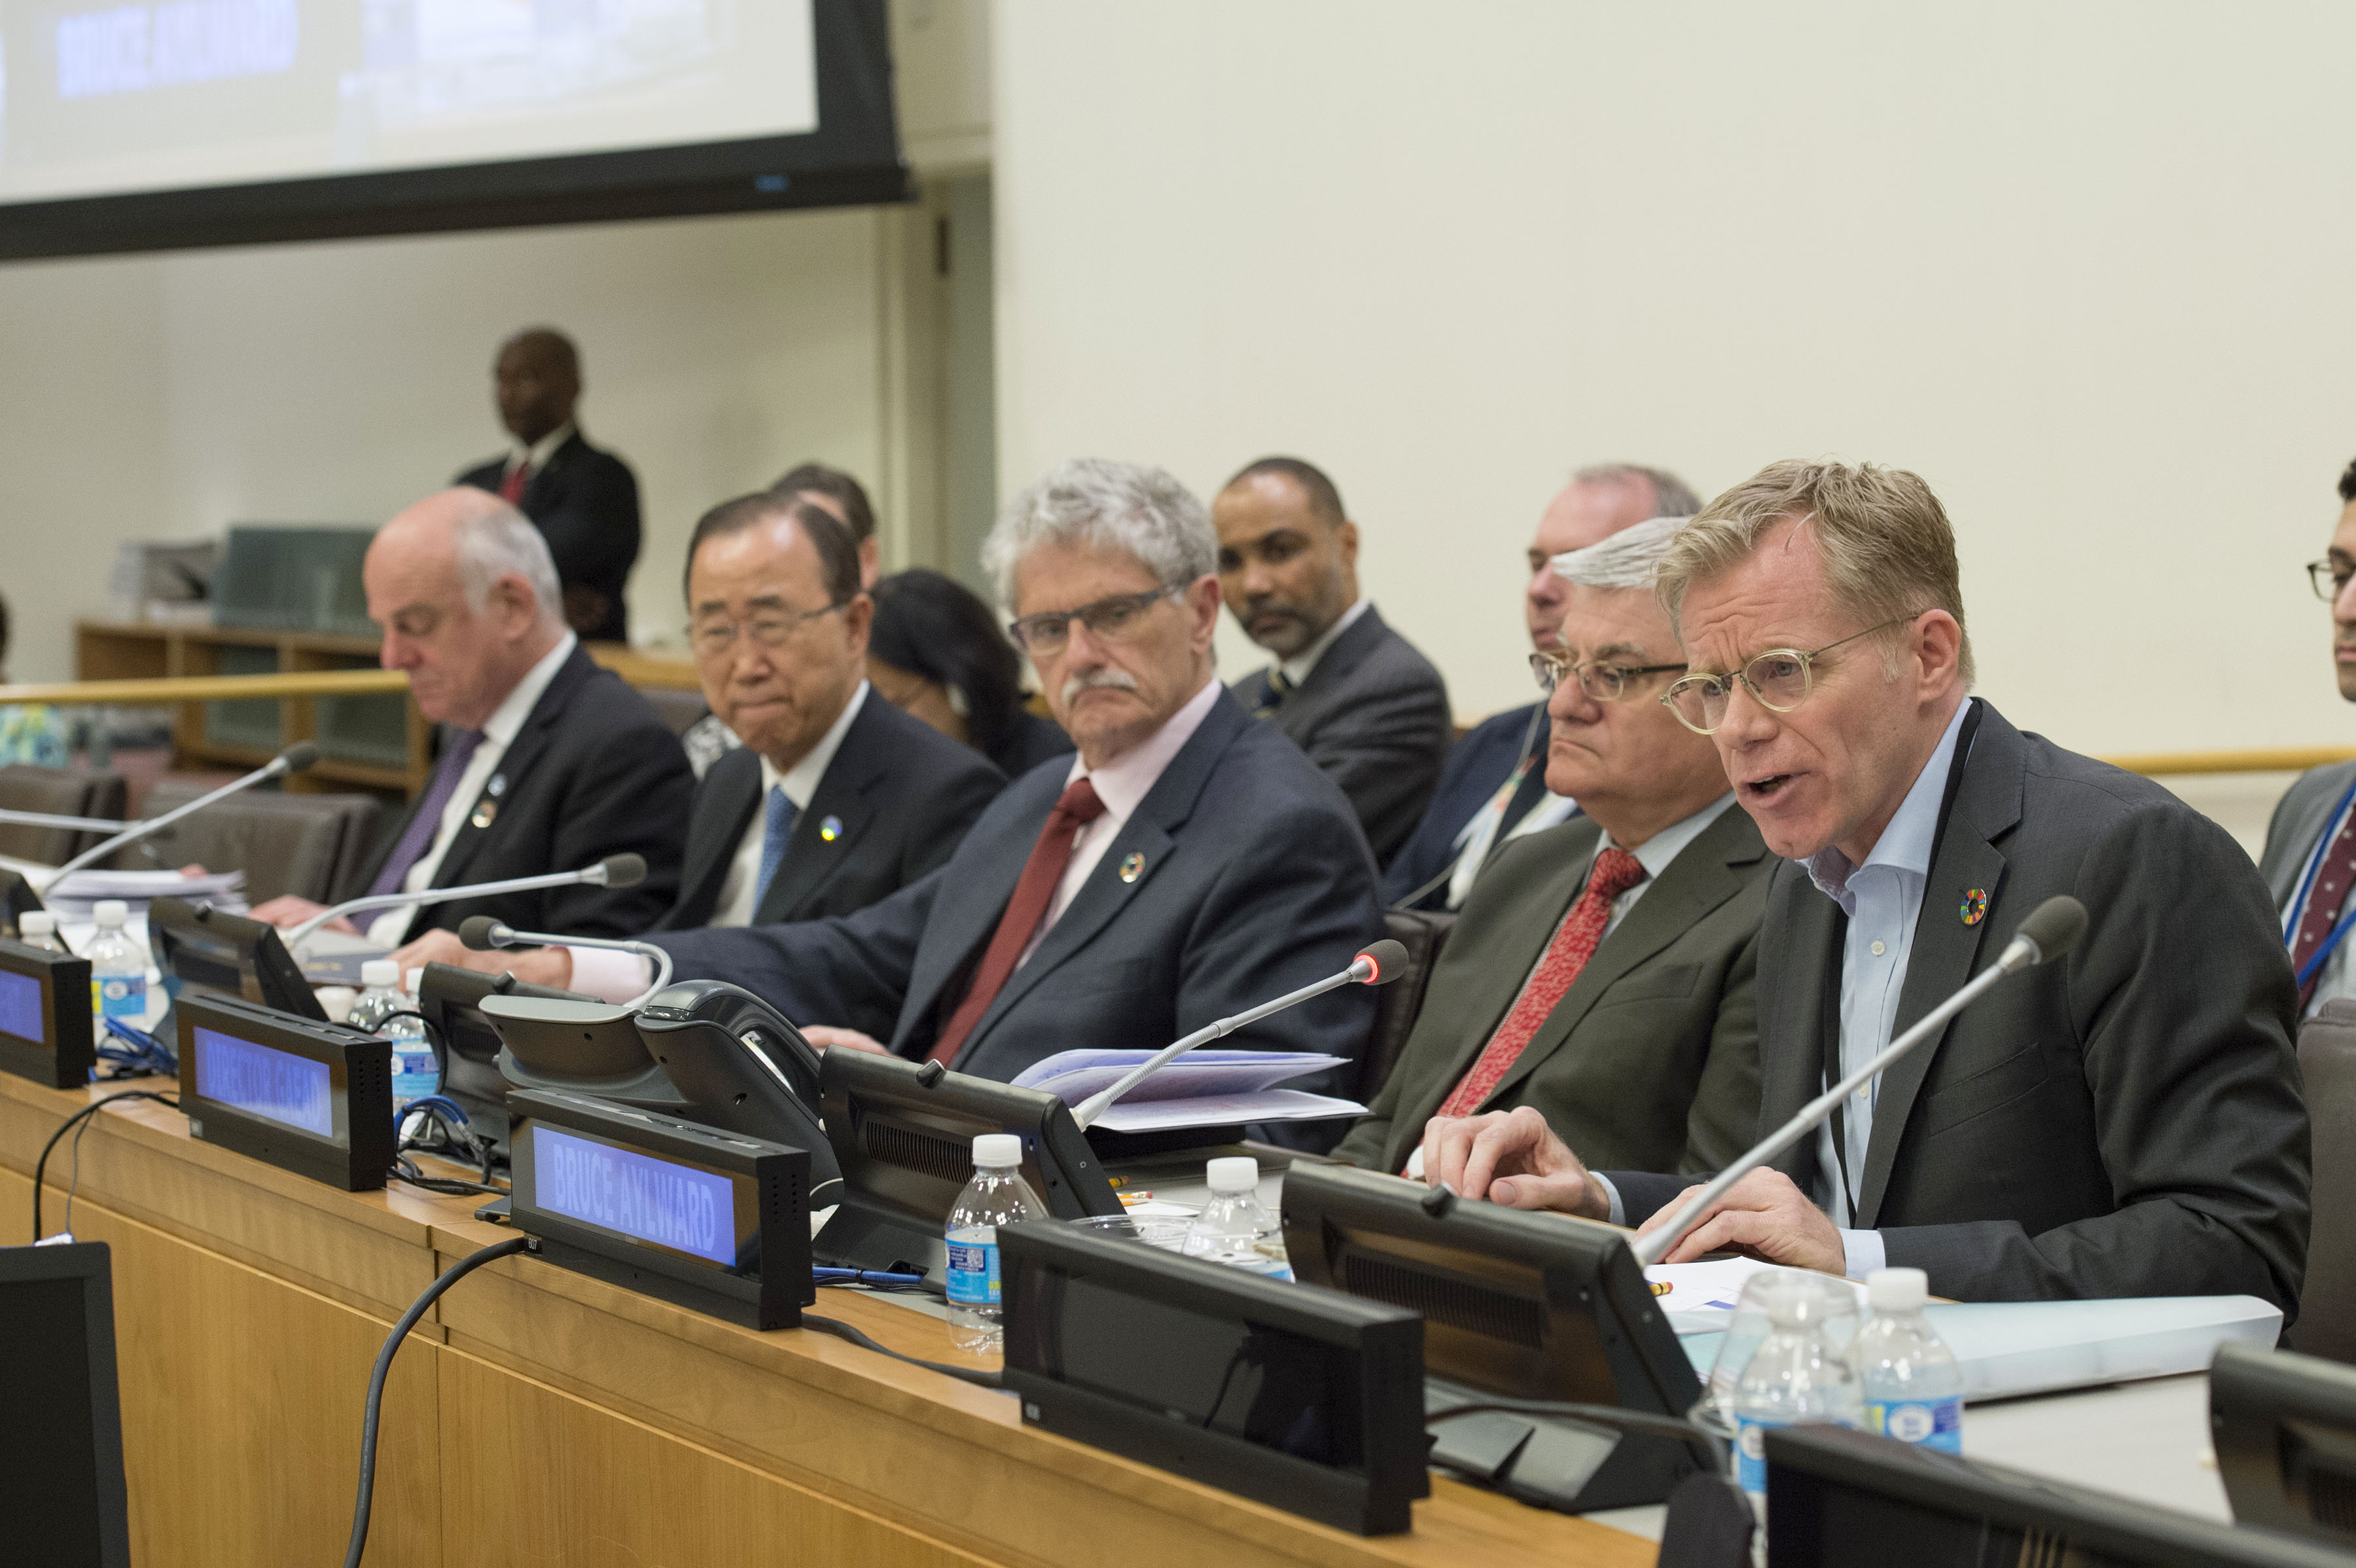 """Dr. Bruce Aylward, right, speaks in June 2016 at a briefing to the United Nations General Assembly on the report from U.N. Secretary-General Ban Ki-moon, second from left, on strengthening the global health system. """"The Ebola outbreak really brought new urgency to long-needed reform and improvements, not just within WHO and not just within its member states, but also within the whole international architecture,"""" Aylward told Army AL&T. (U.N. photo by Eskinder Debebe)"""